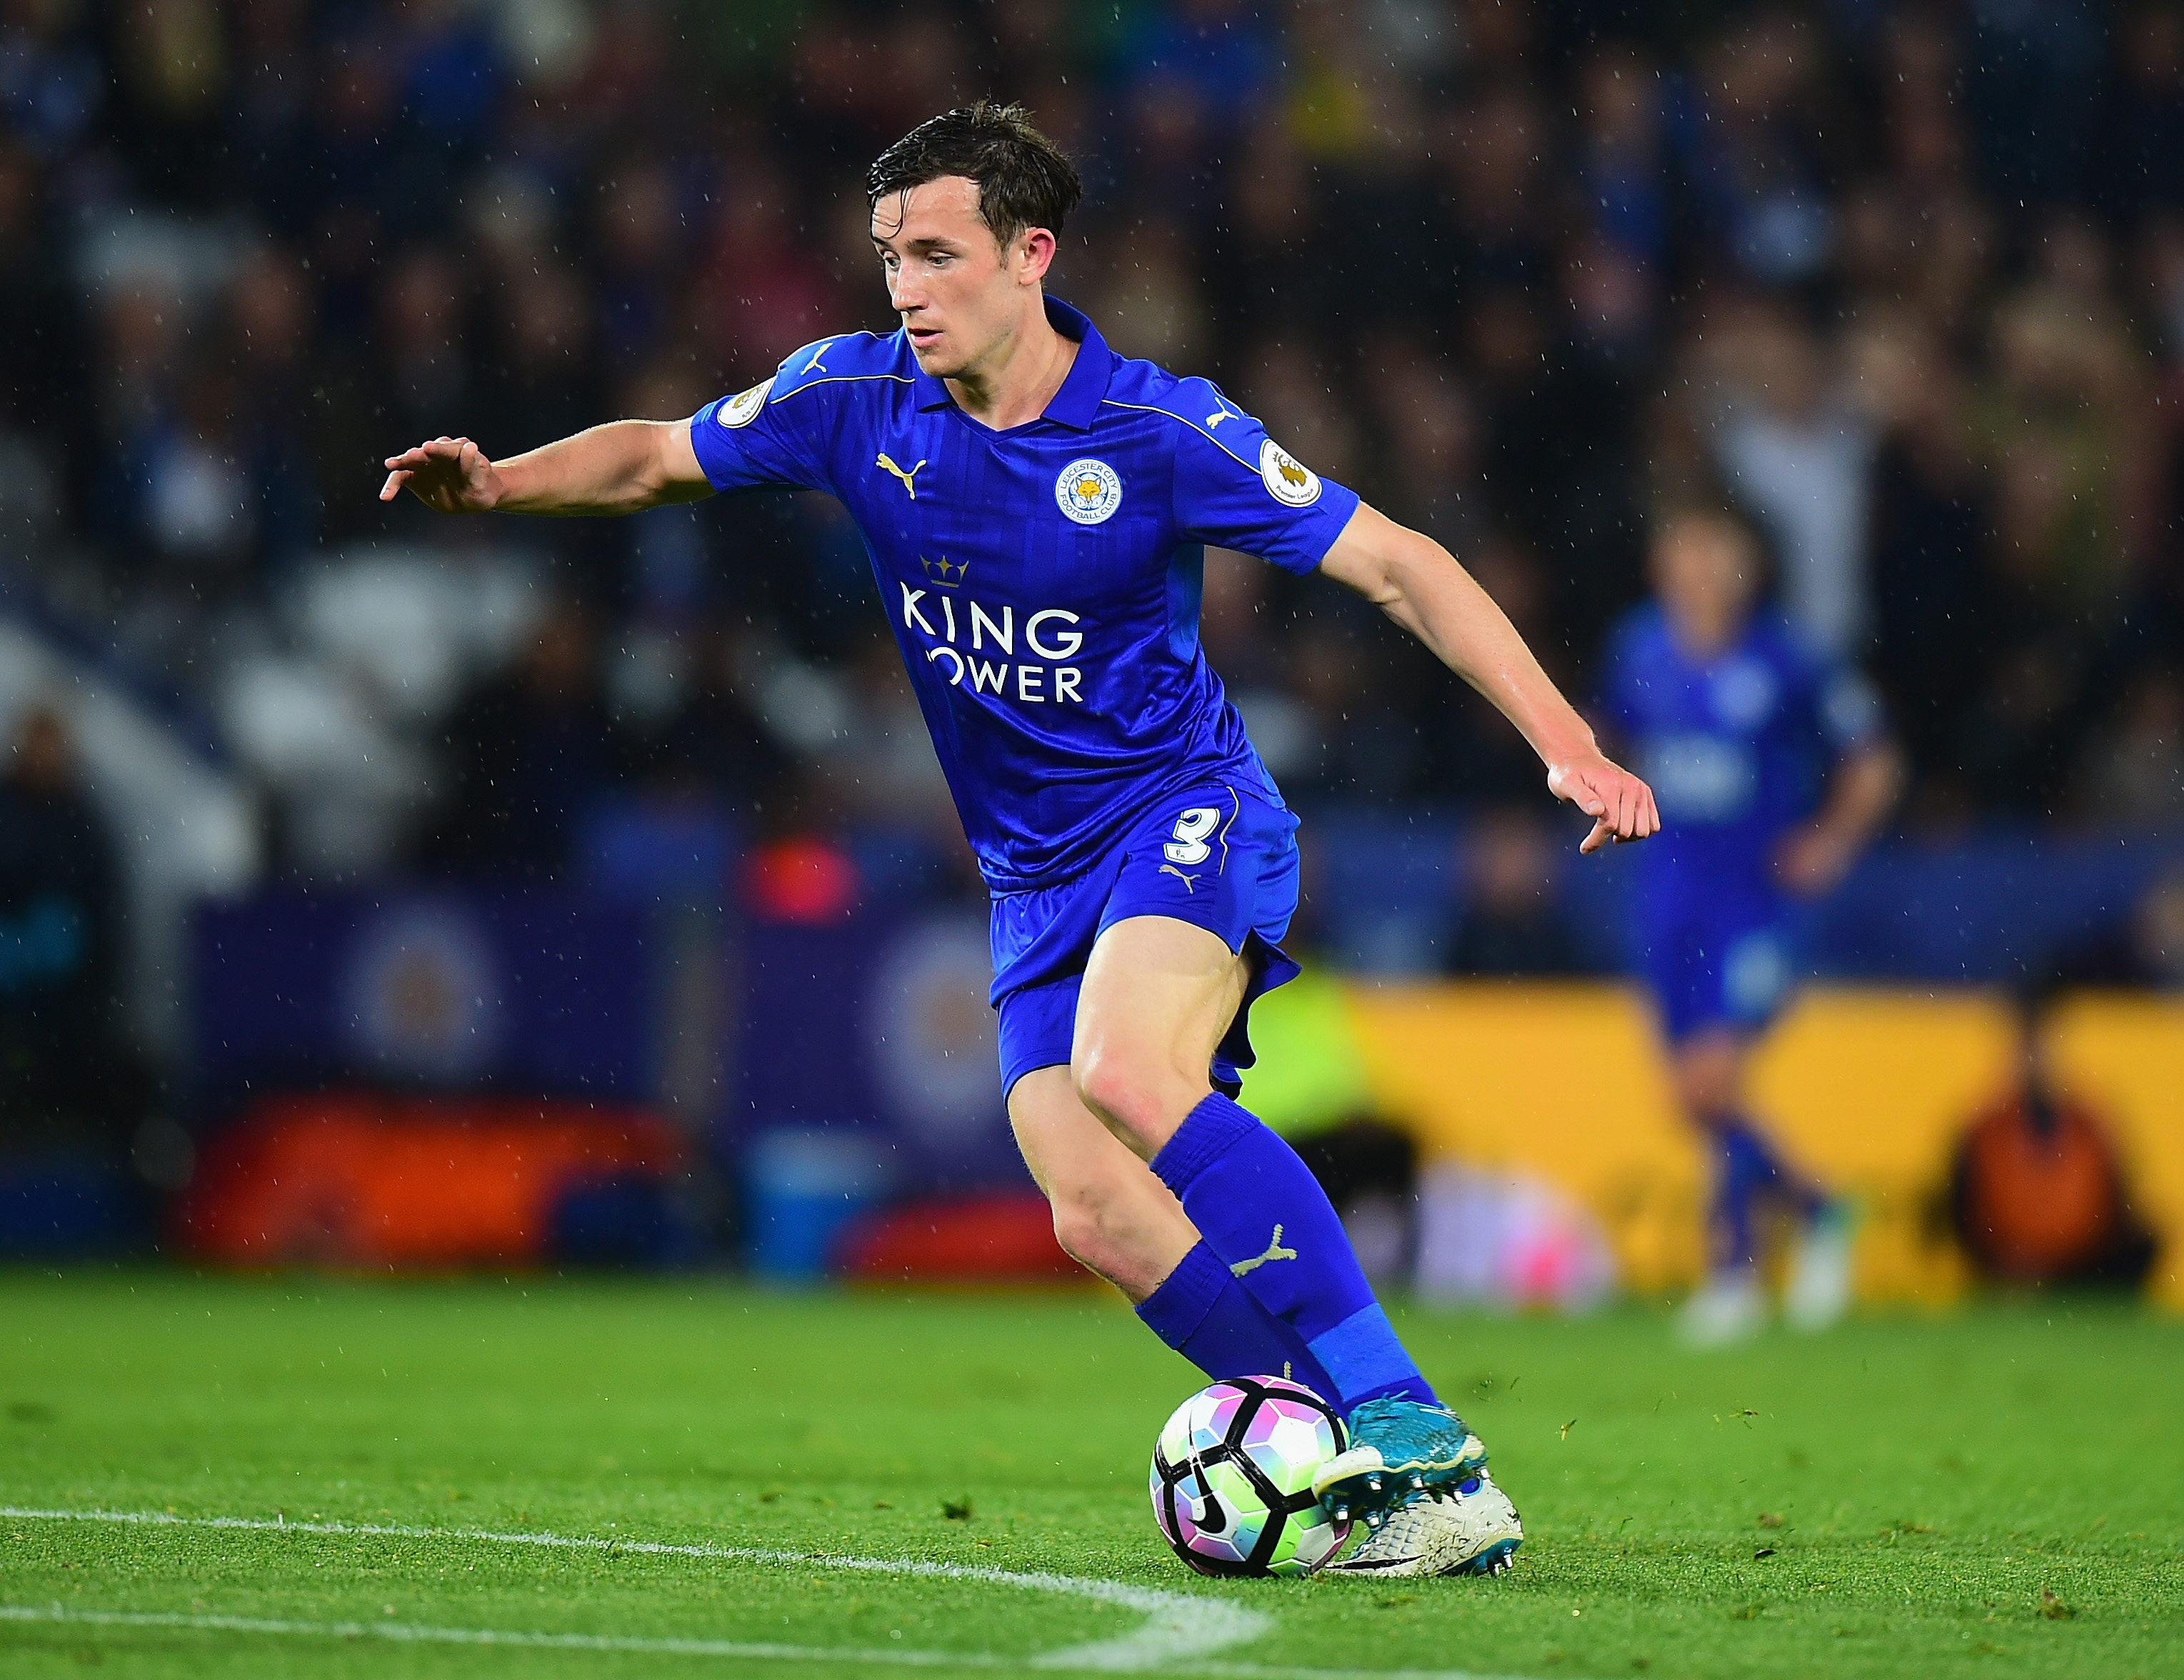 Leicester €14m deal for defensive midfielder potentially done in 'coming hours'